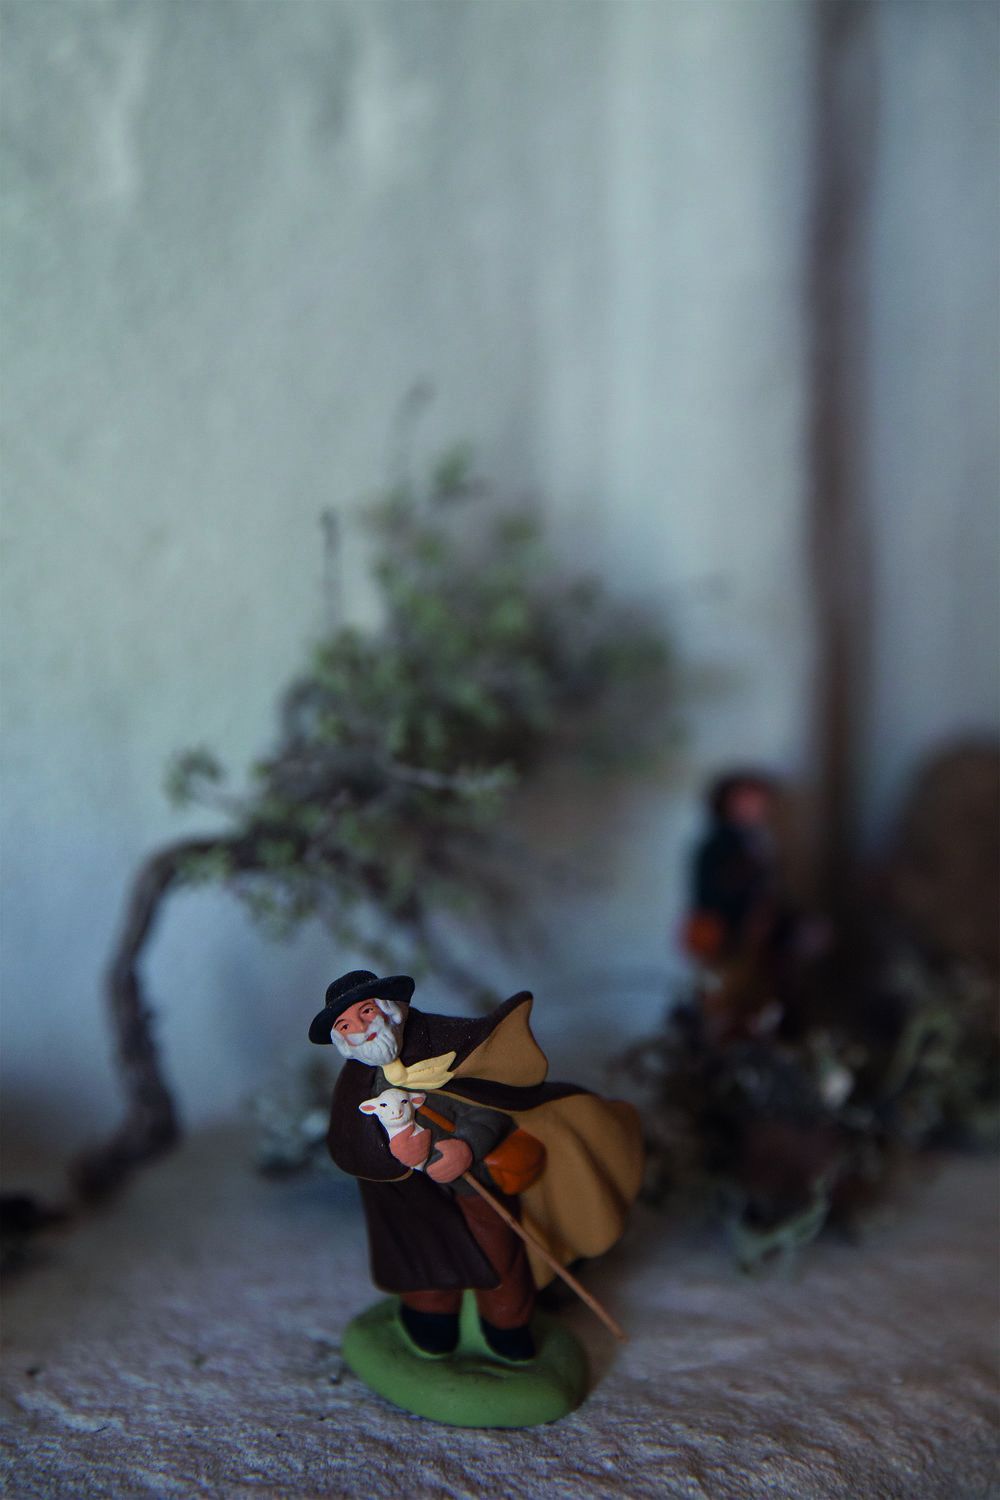 A windblown shepherd  santon .  Santons  are clay figurines of saints represented by ordinary Provencal characters and used in creche sets at Christmastime. They were first first made during the French Revolution when churches were closed and nativity scenes were forbidden. People took to creating their own creche sets with local characters instead of known saints. © Rachel Cobb. Courtesy of Damiani.